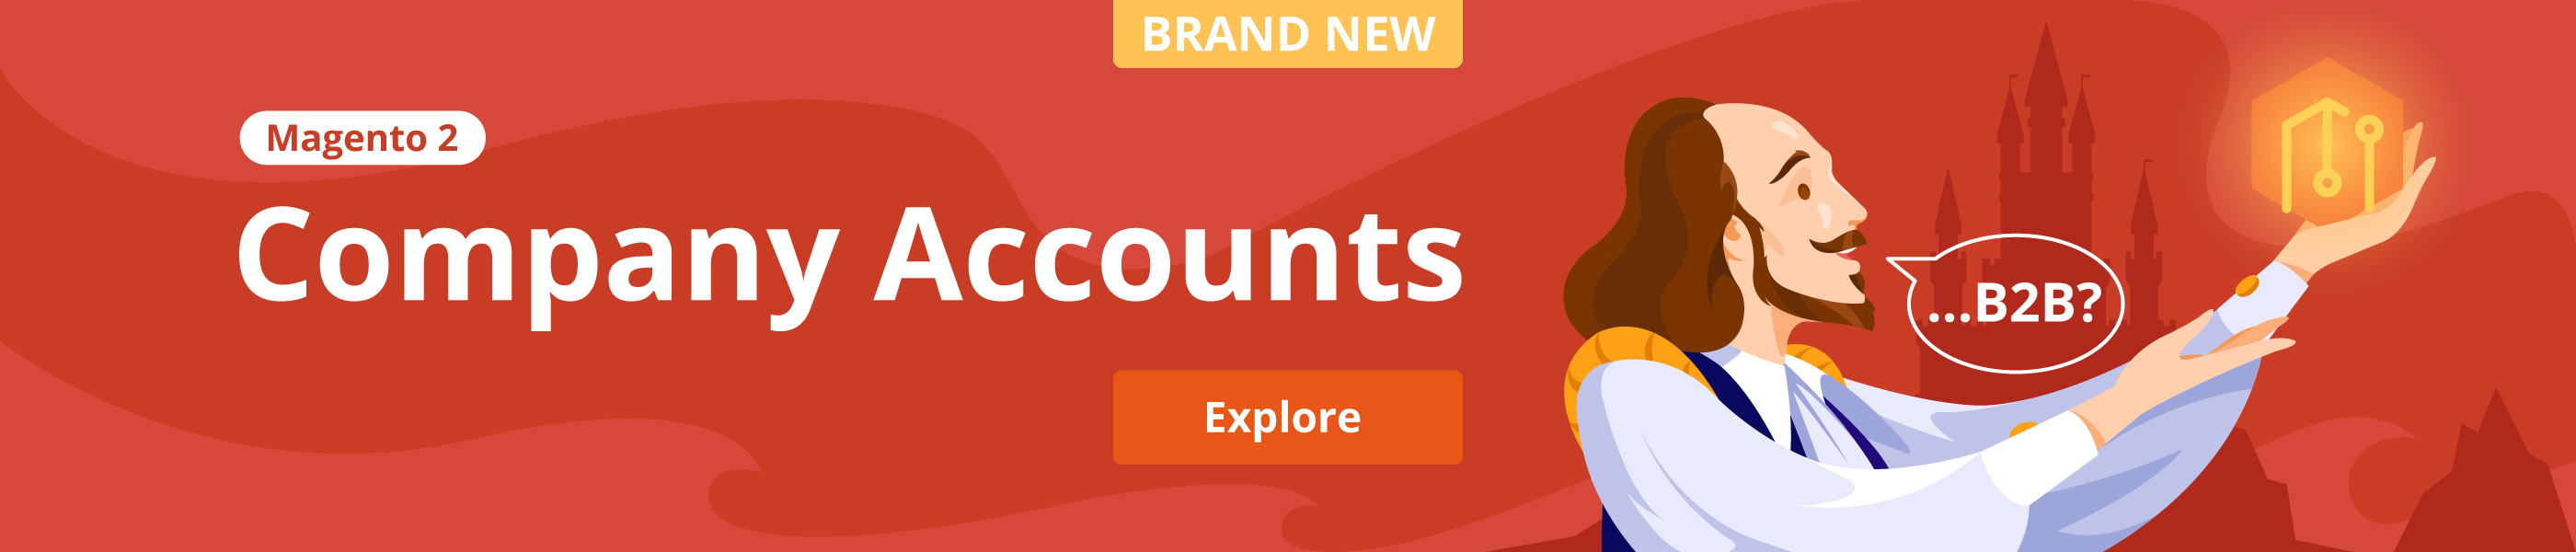 Magento 2 Company Accounts release